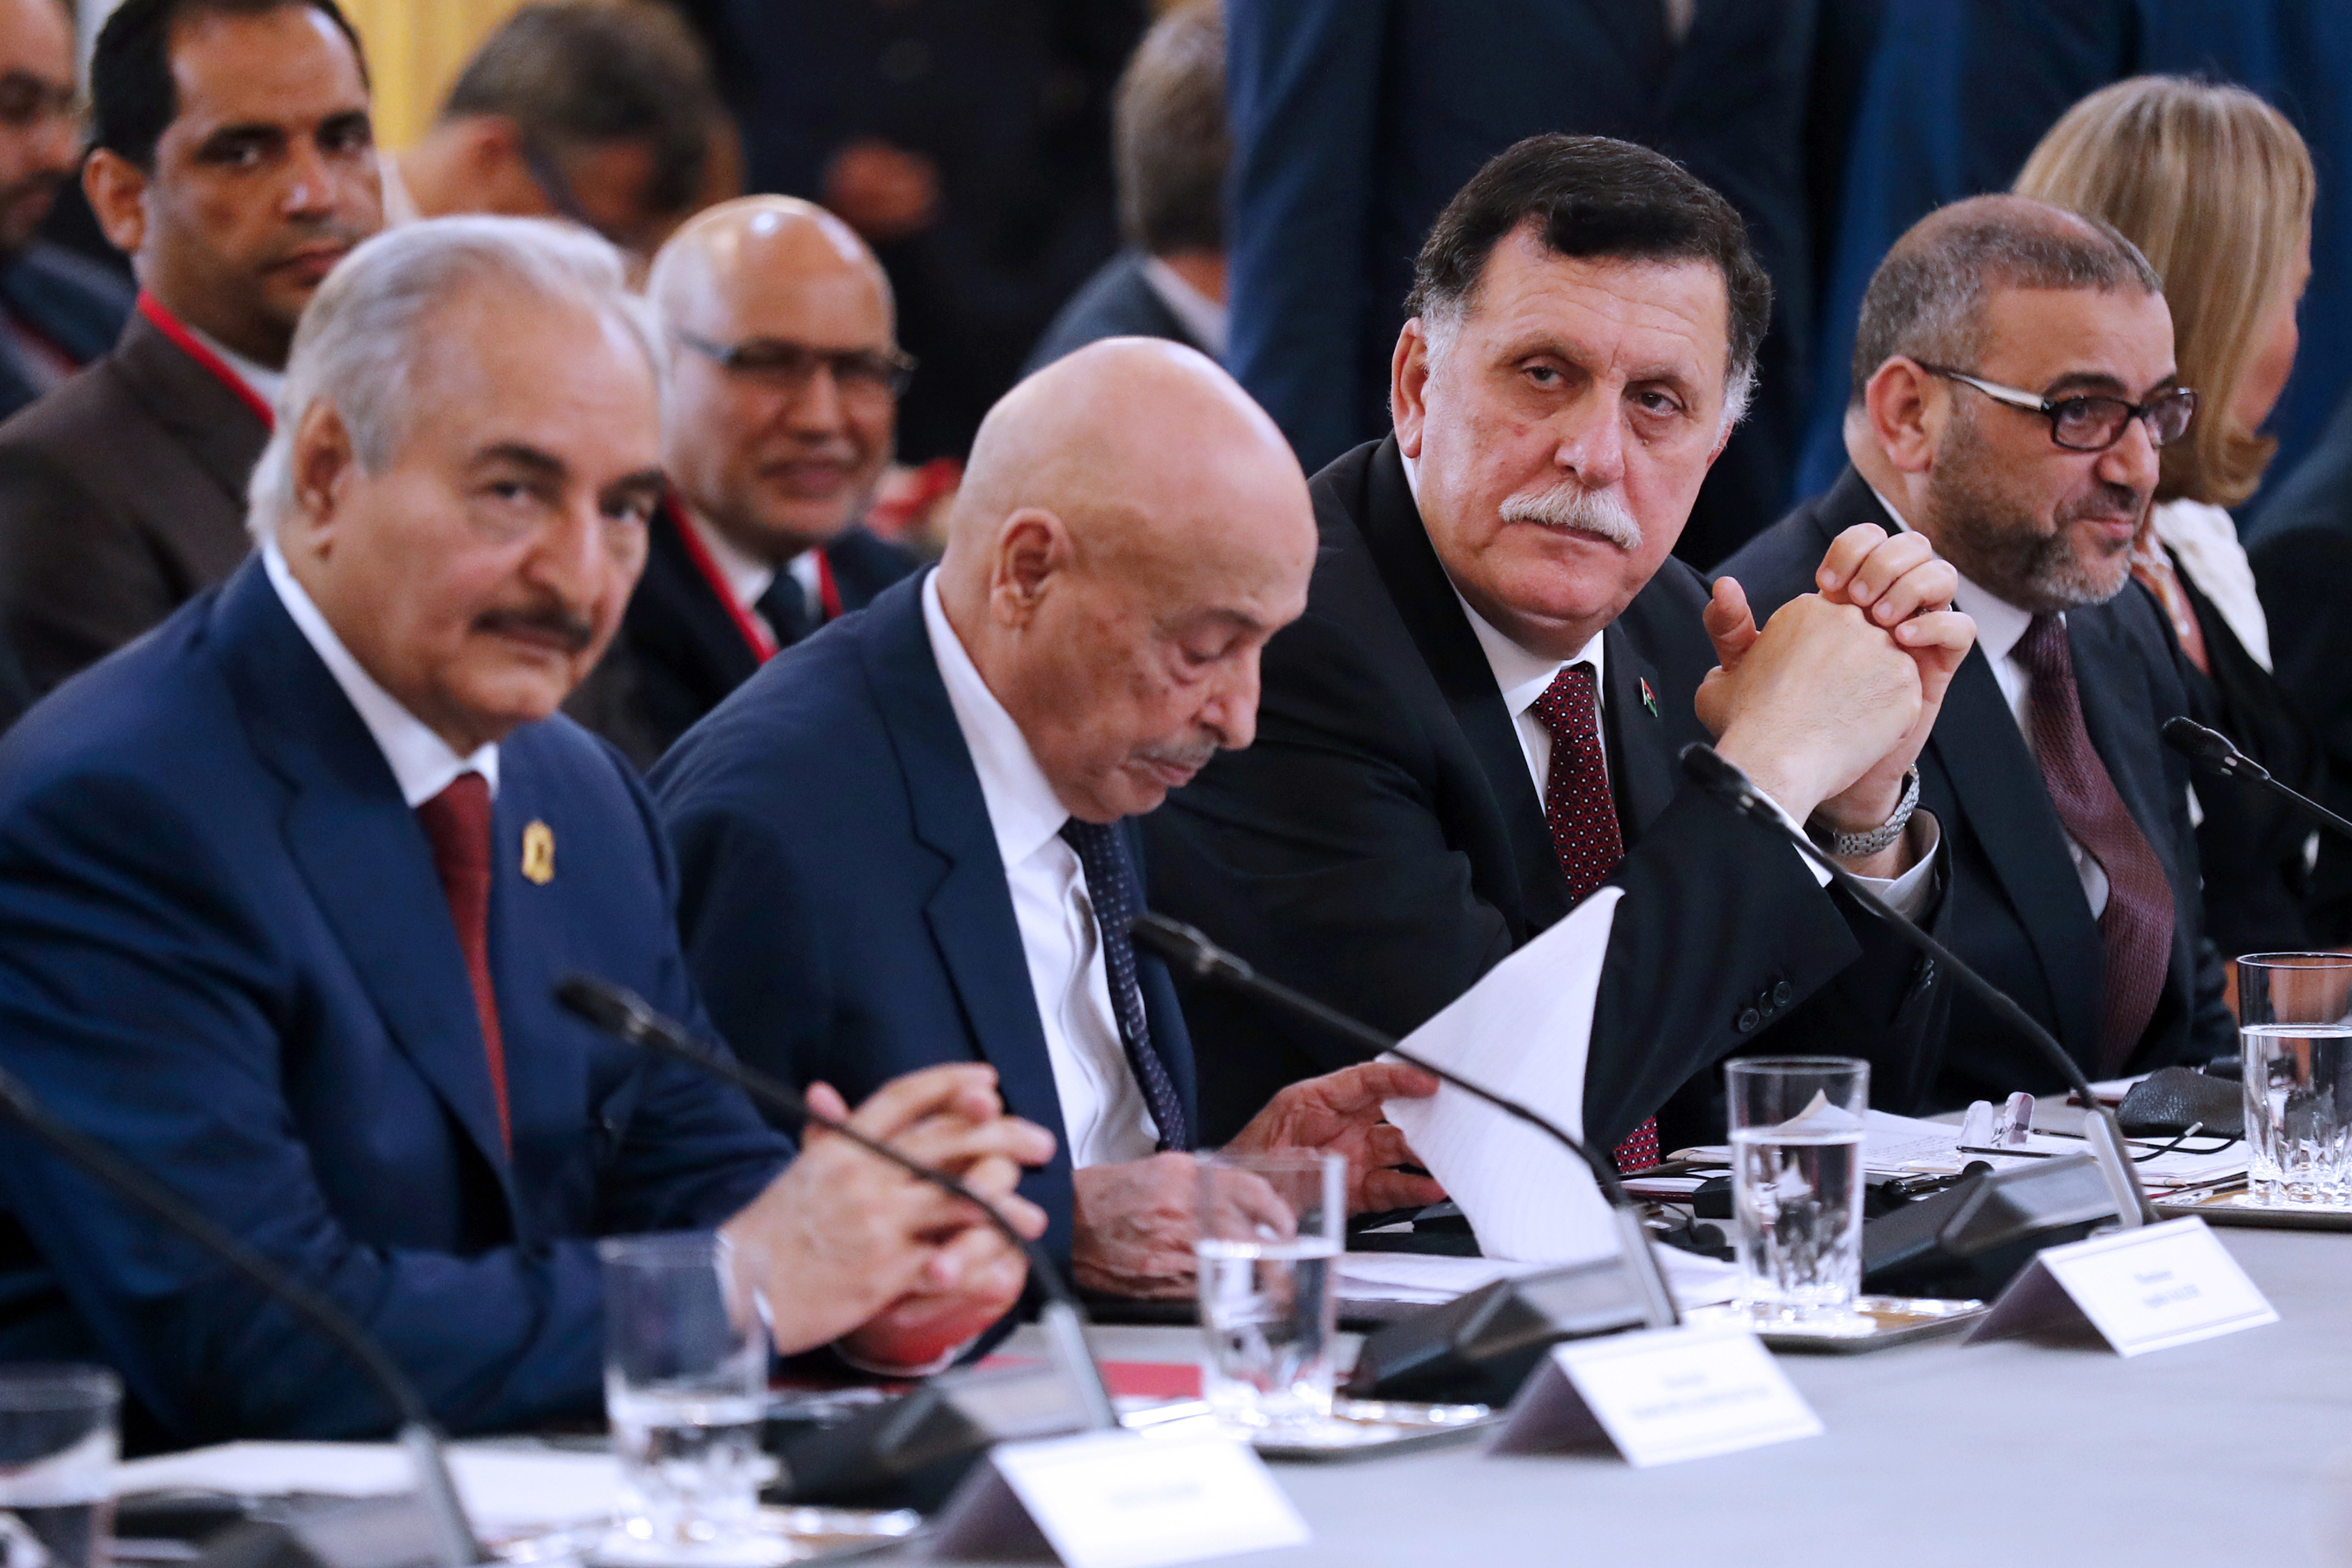 Libya Chief of Staff, Marshall Khalifa Haftar, President of the Libyan House of Representatives in Tobruk Aguila Saleh Issa, Chairman of the Presidential Council of Libya, Fayez al-Sarraj, and Khaled Mechri attend a conference on Libya, at the Elysee...